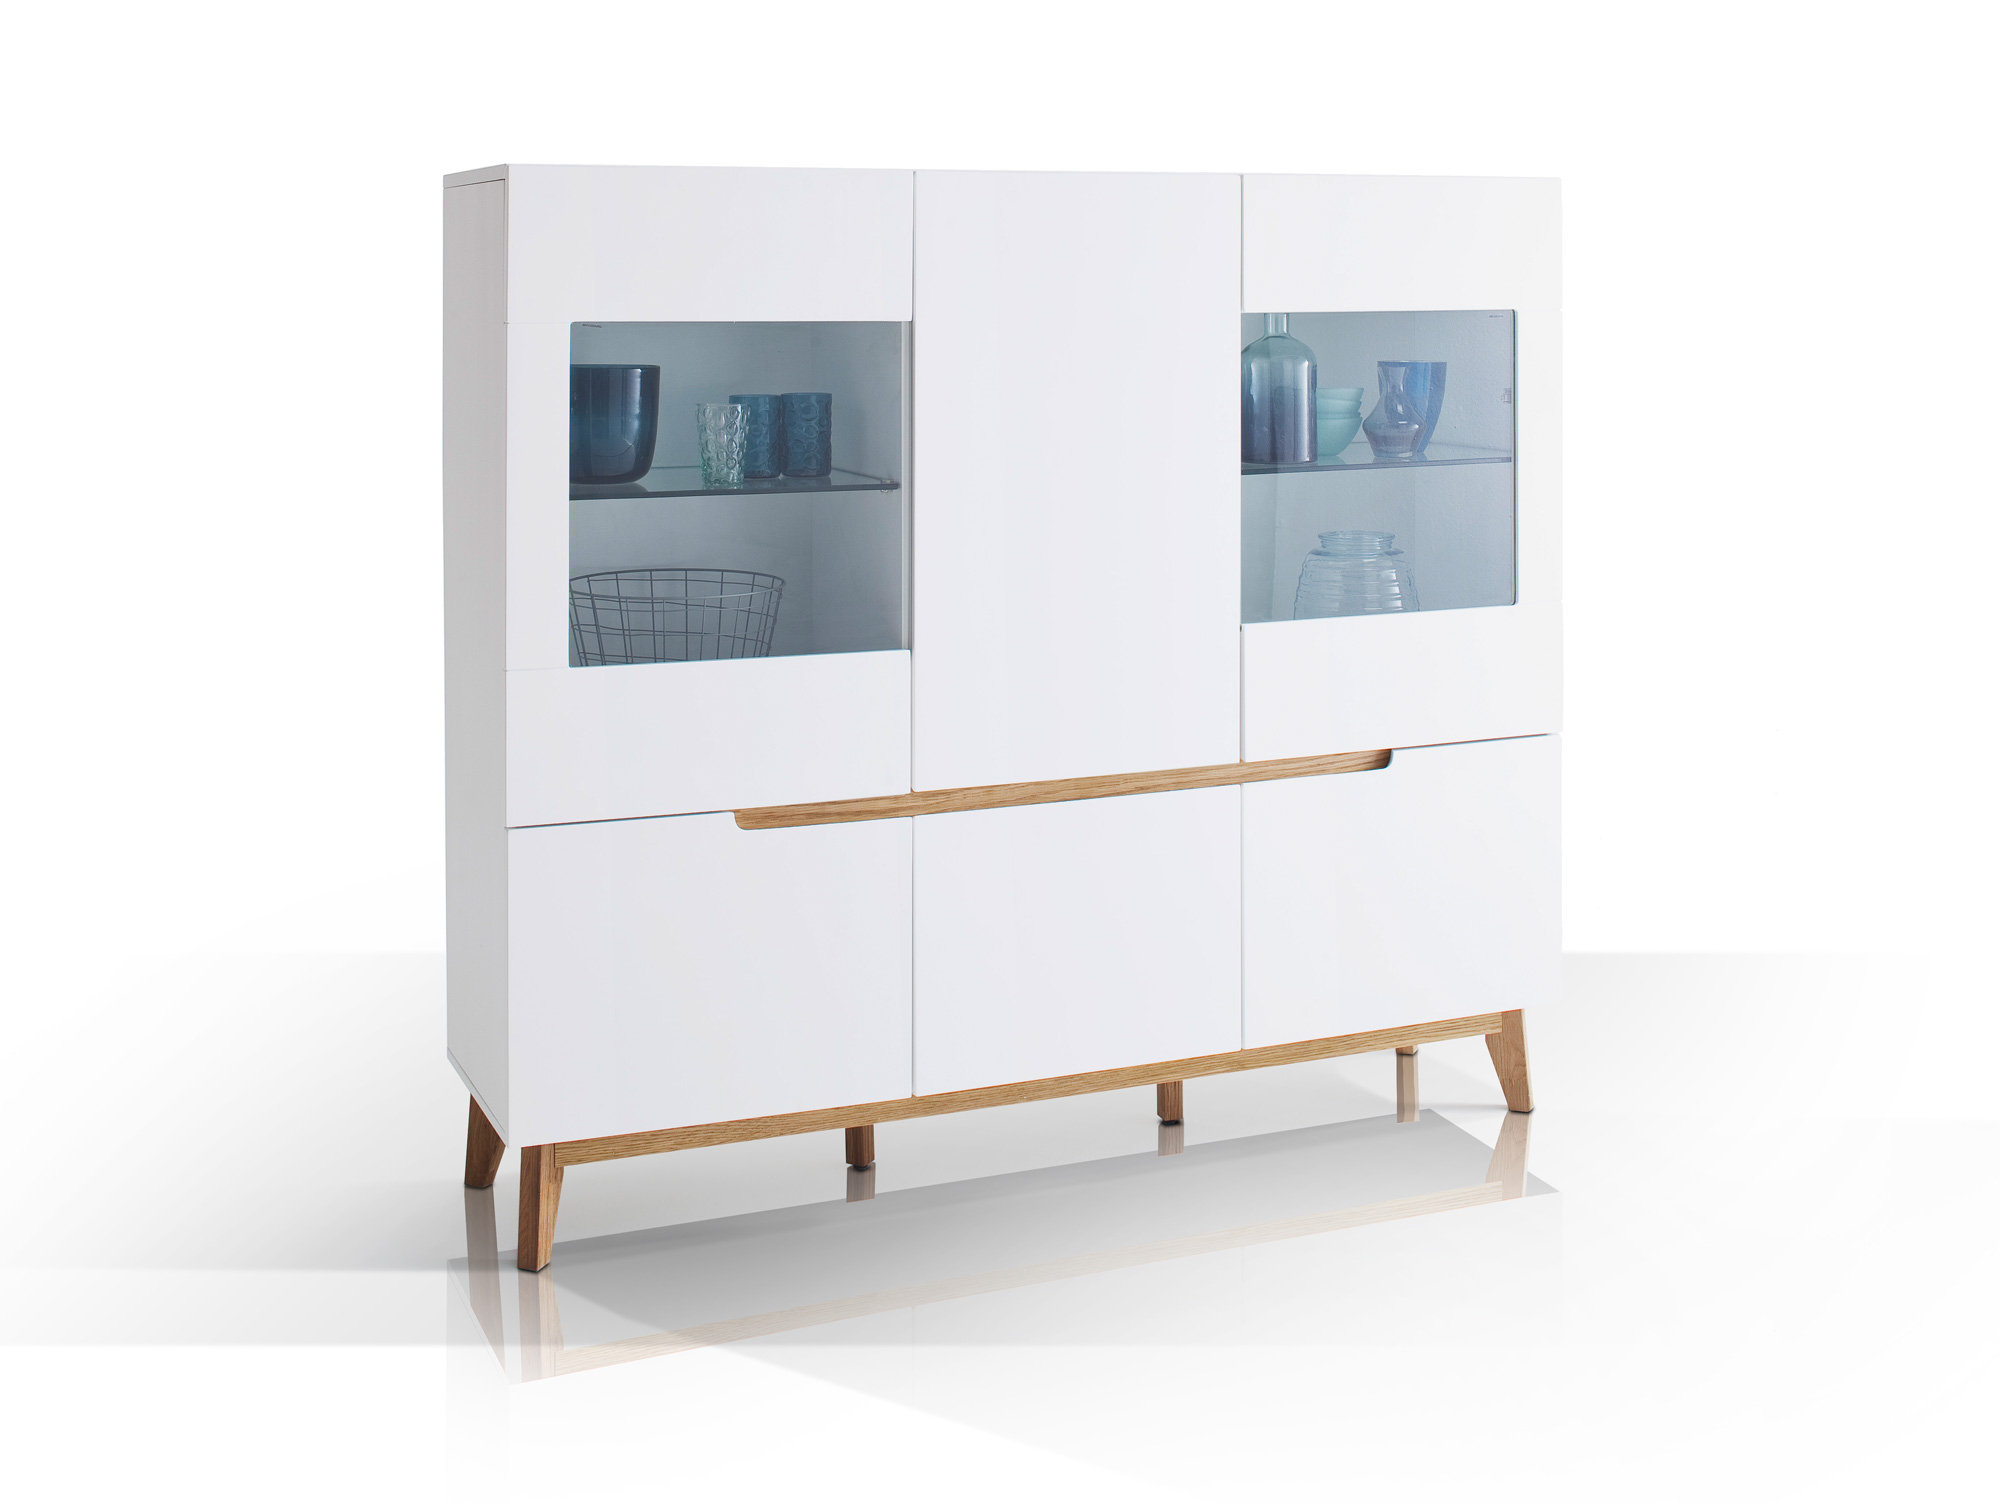 cava highboard schrank 70er jahre stil kommode sideboard wei weiss eiche b155 ebay. Black Bedroom Furniture Sets. Home Design Ideas